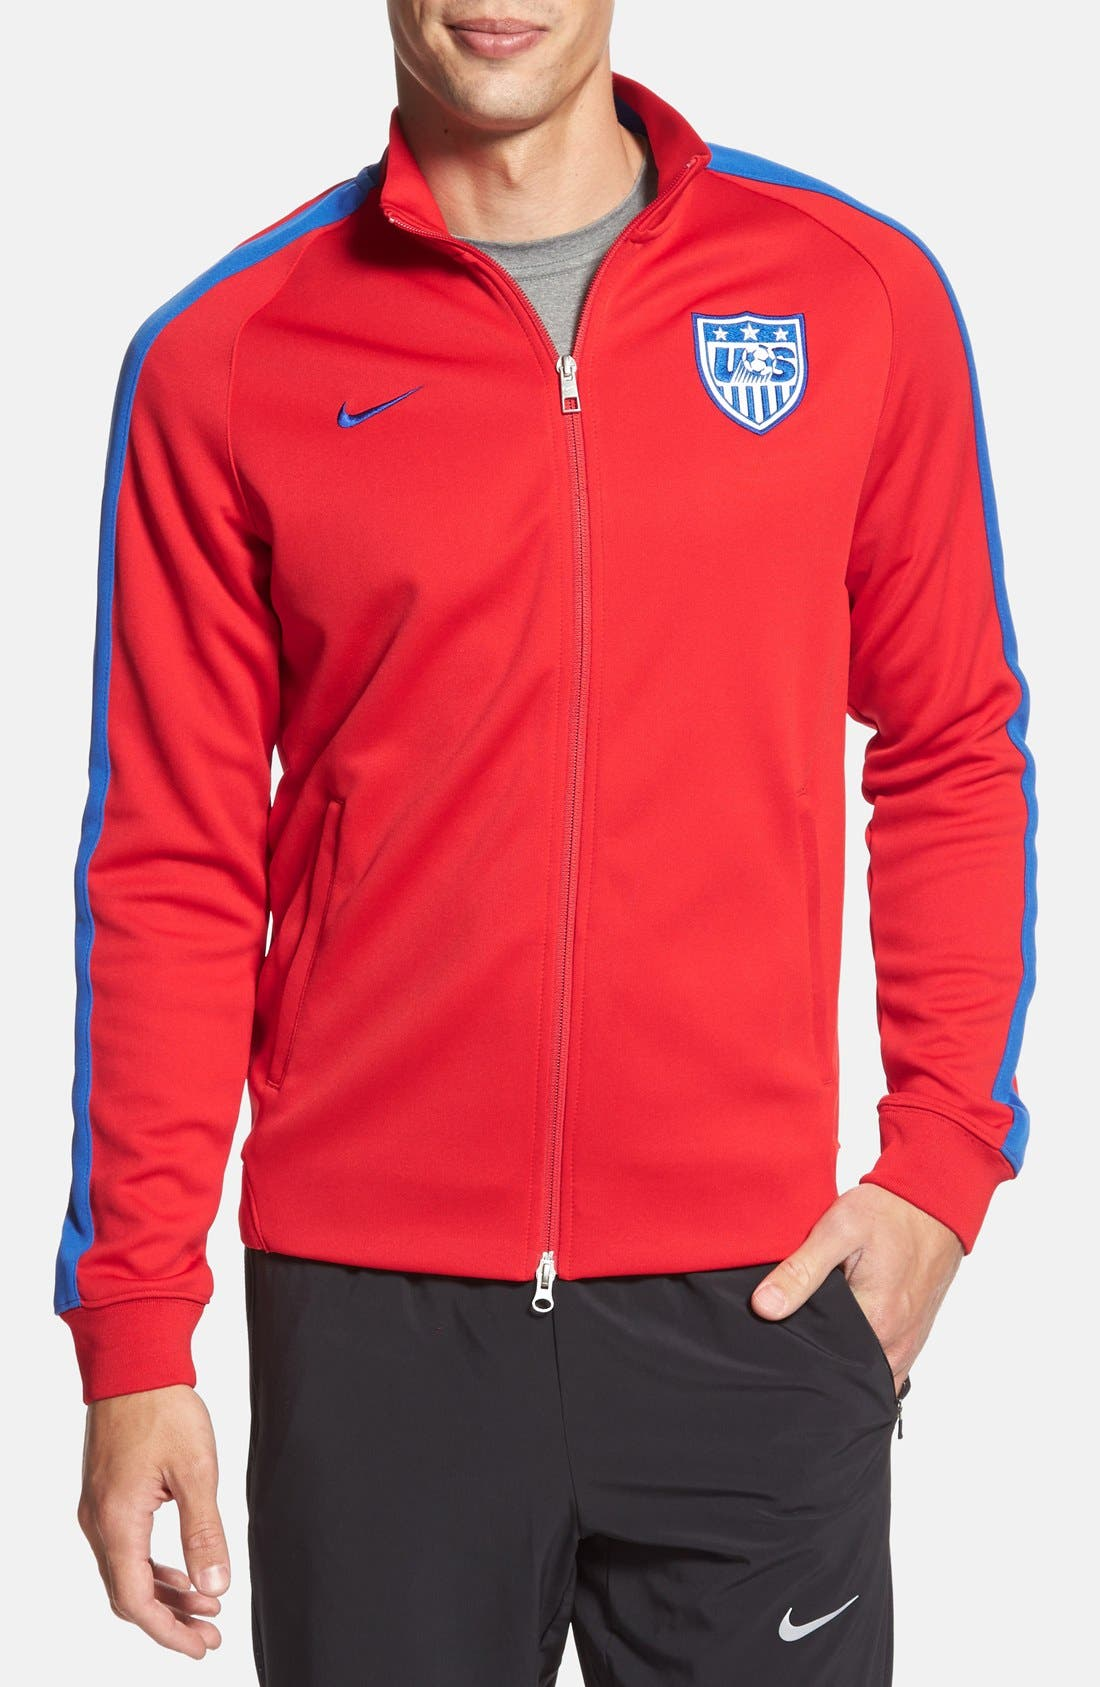 Alternate Image 1 Selected - Nike 'USA - N98 World Cup Authentic' Track Jacket